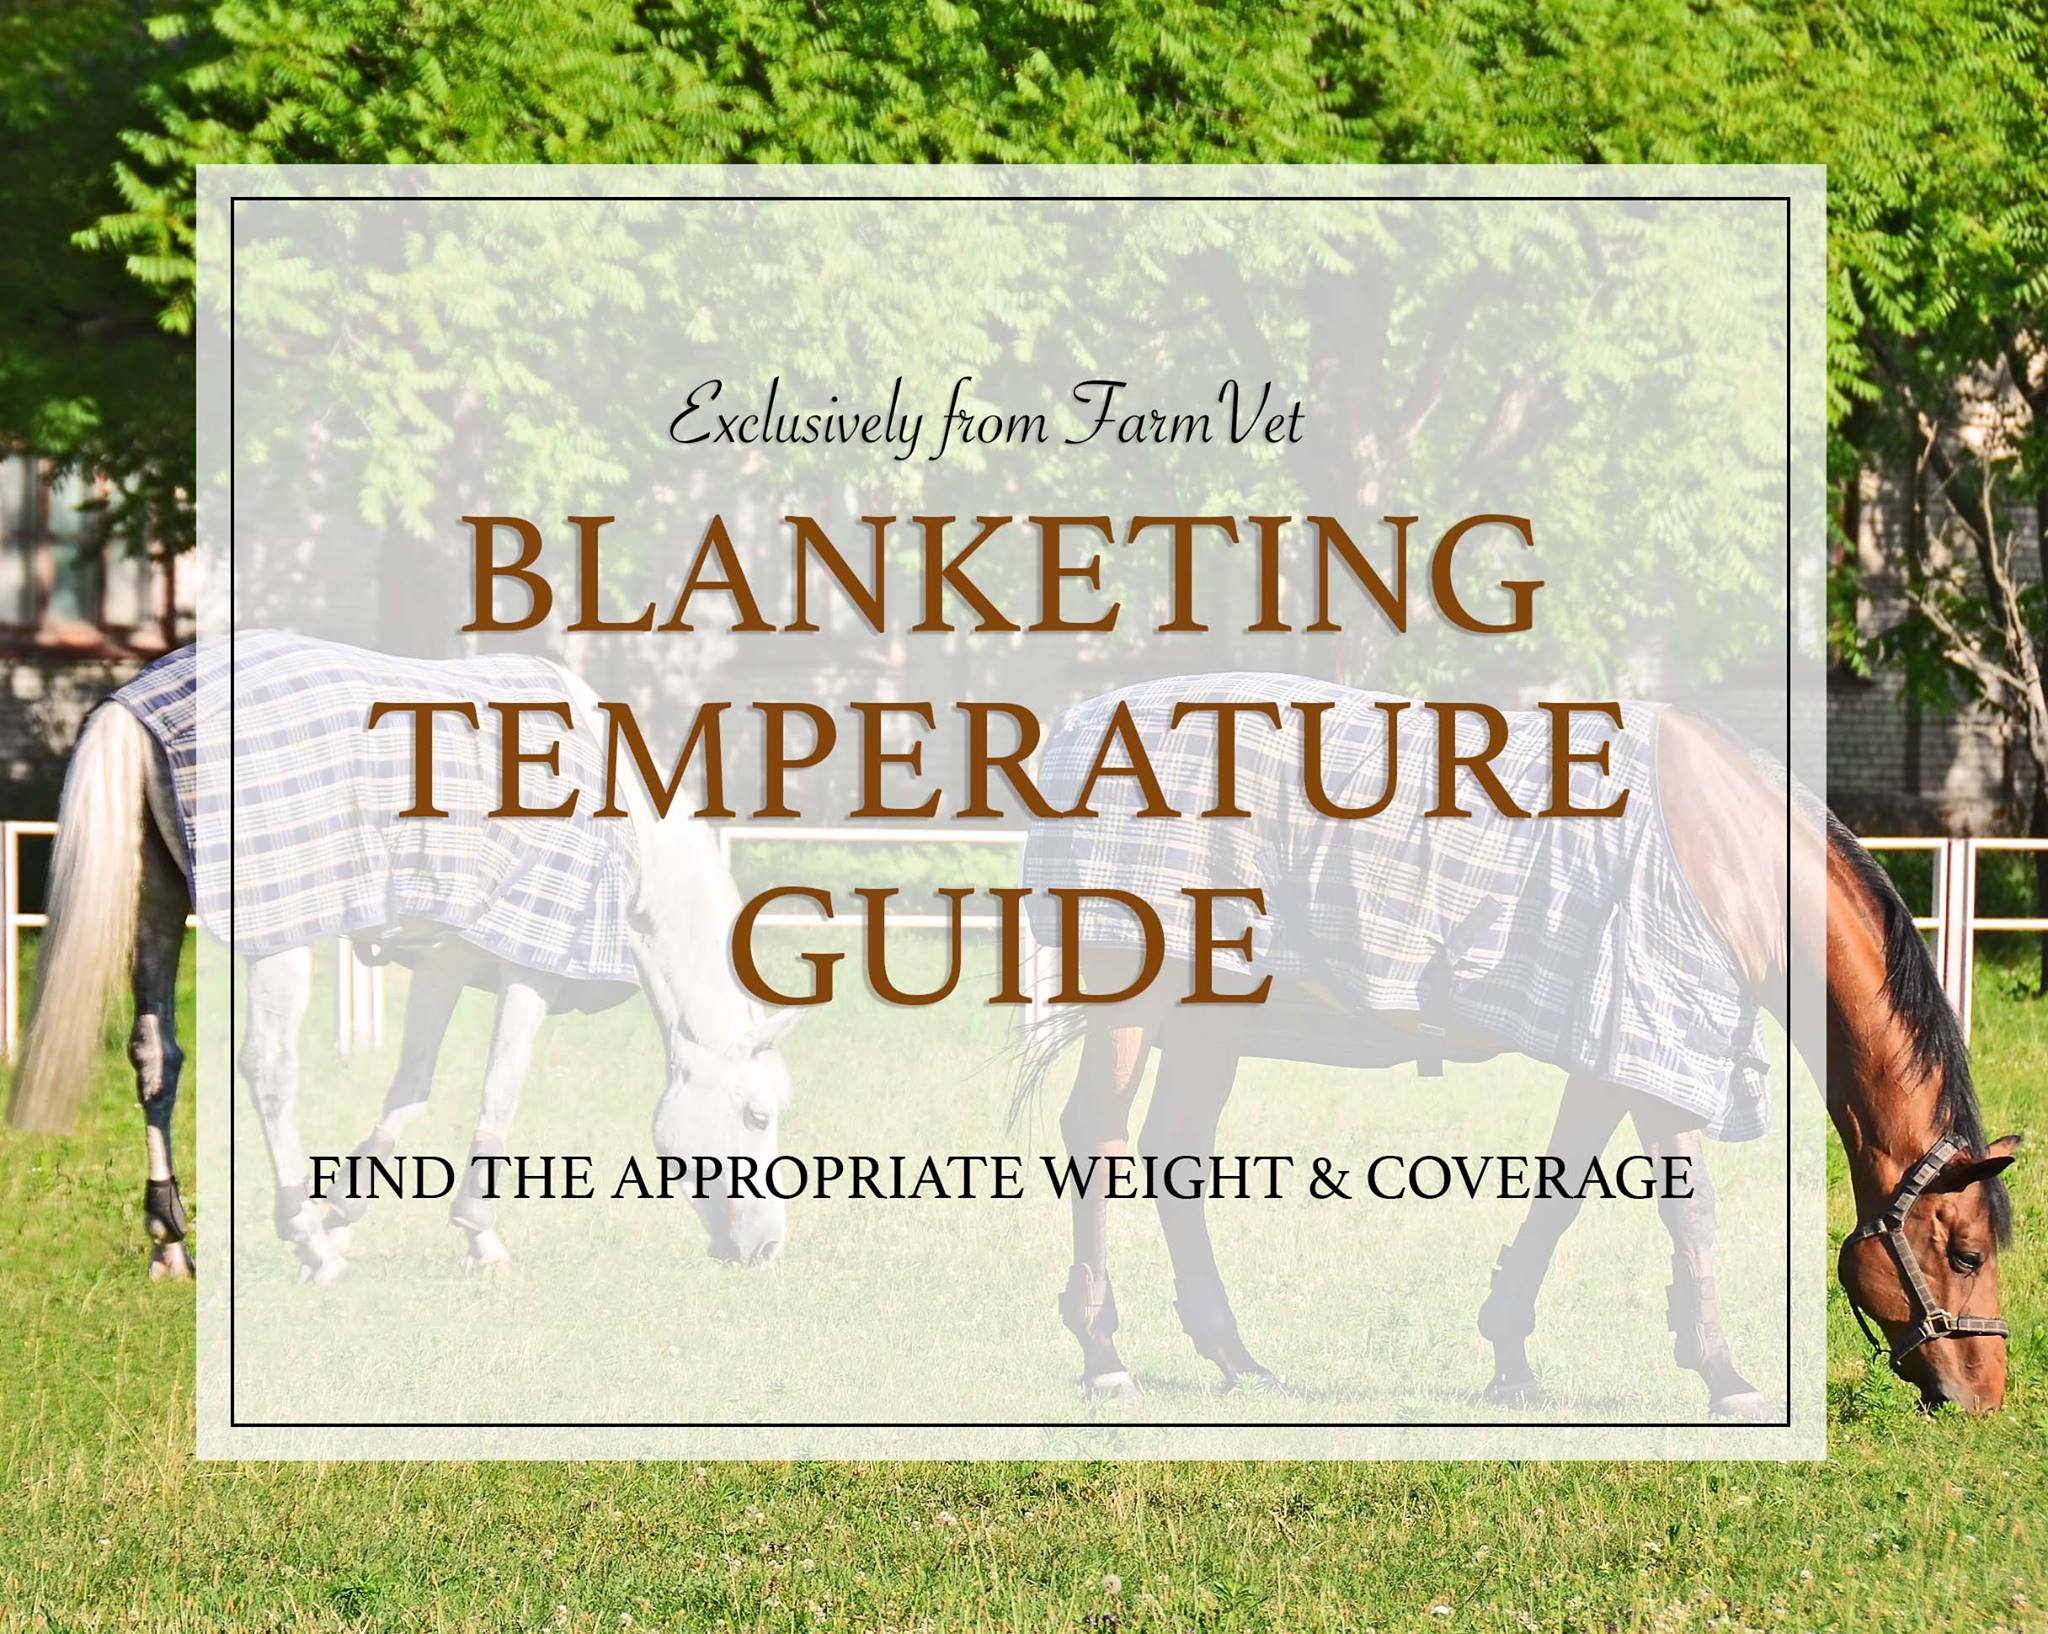 A No-Nonsense Guide to Blanketing